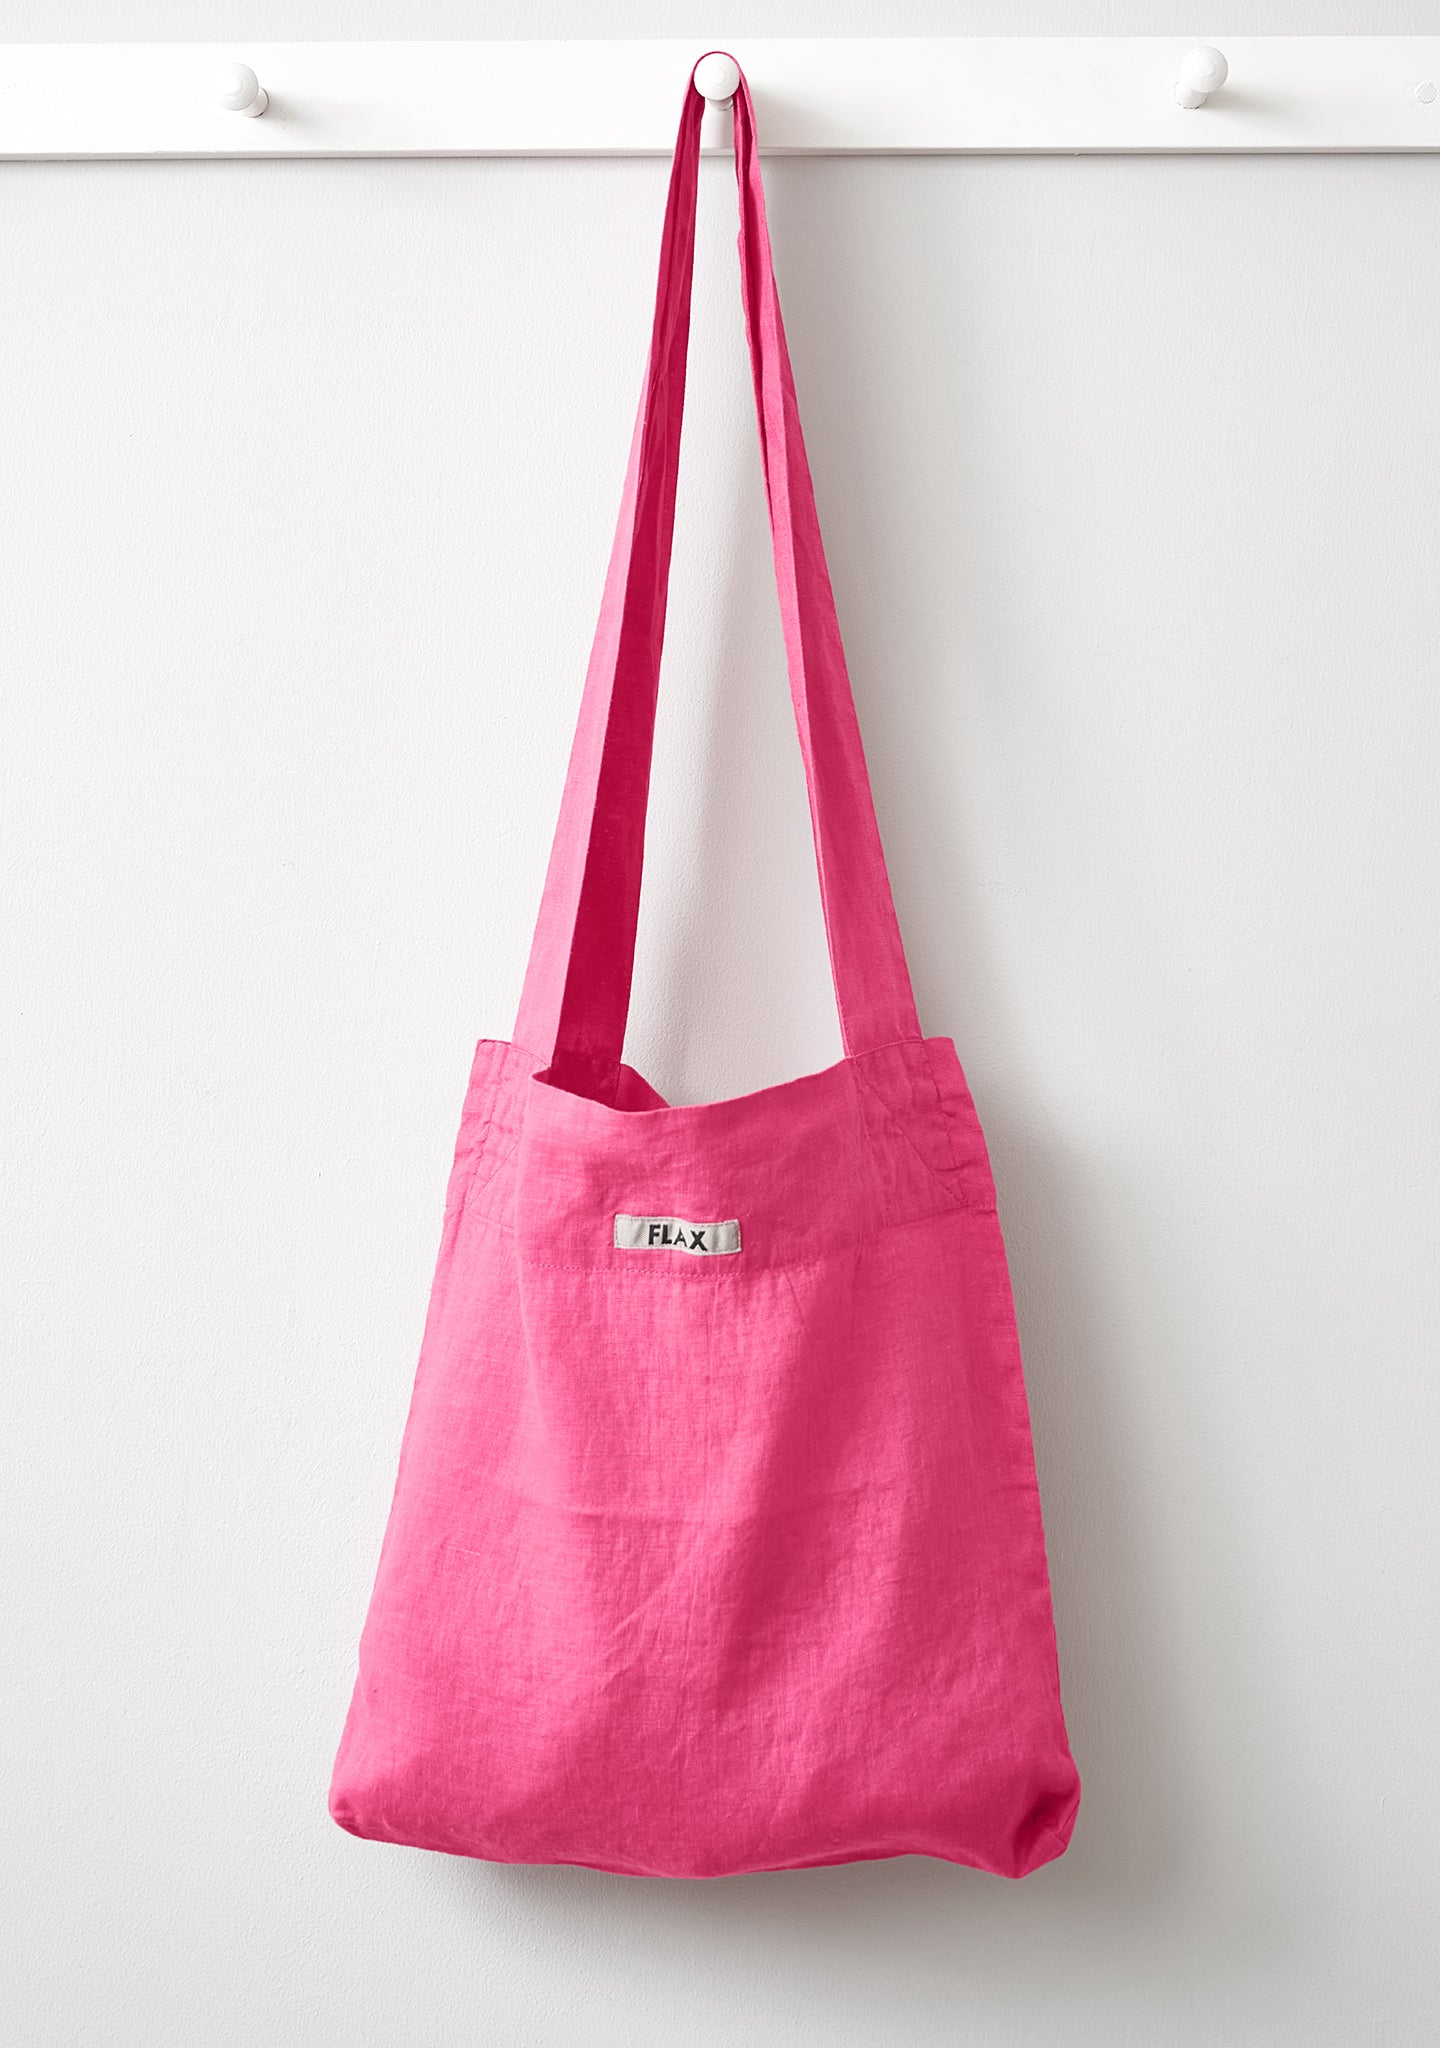 the bag linen shopping bag pink